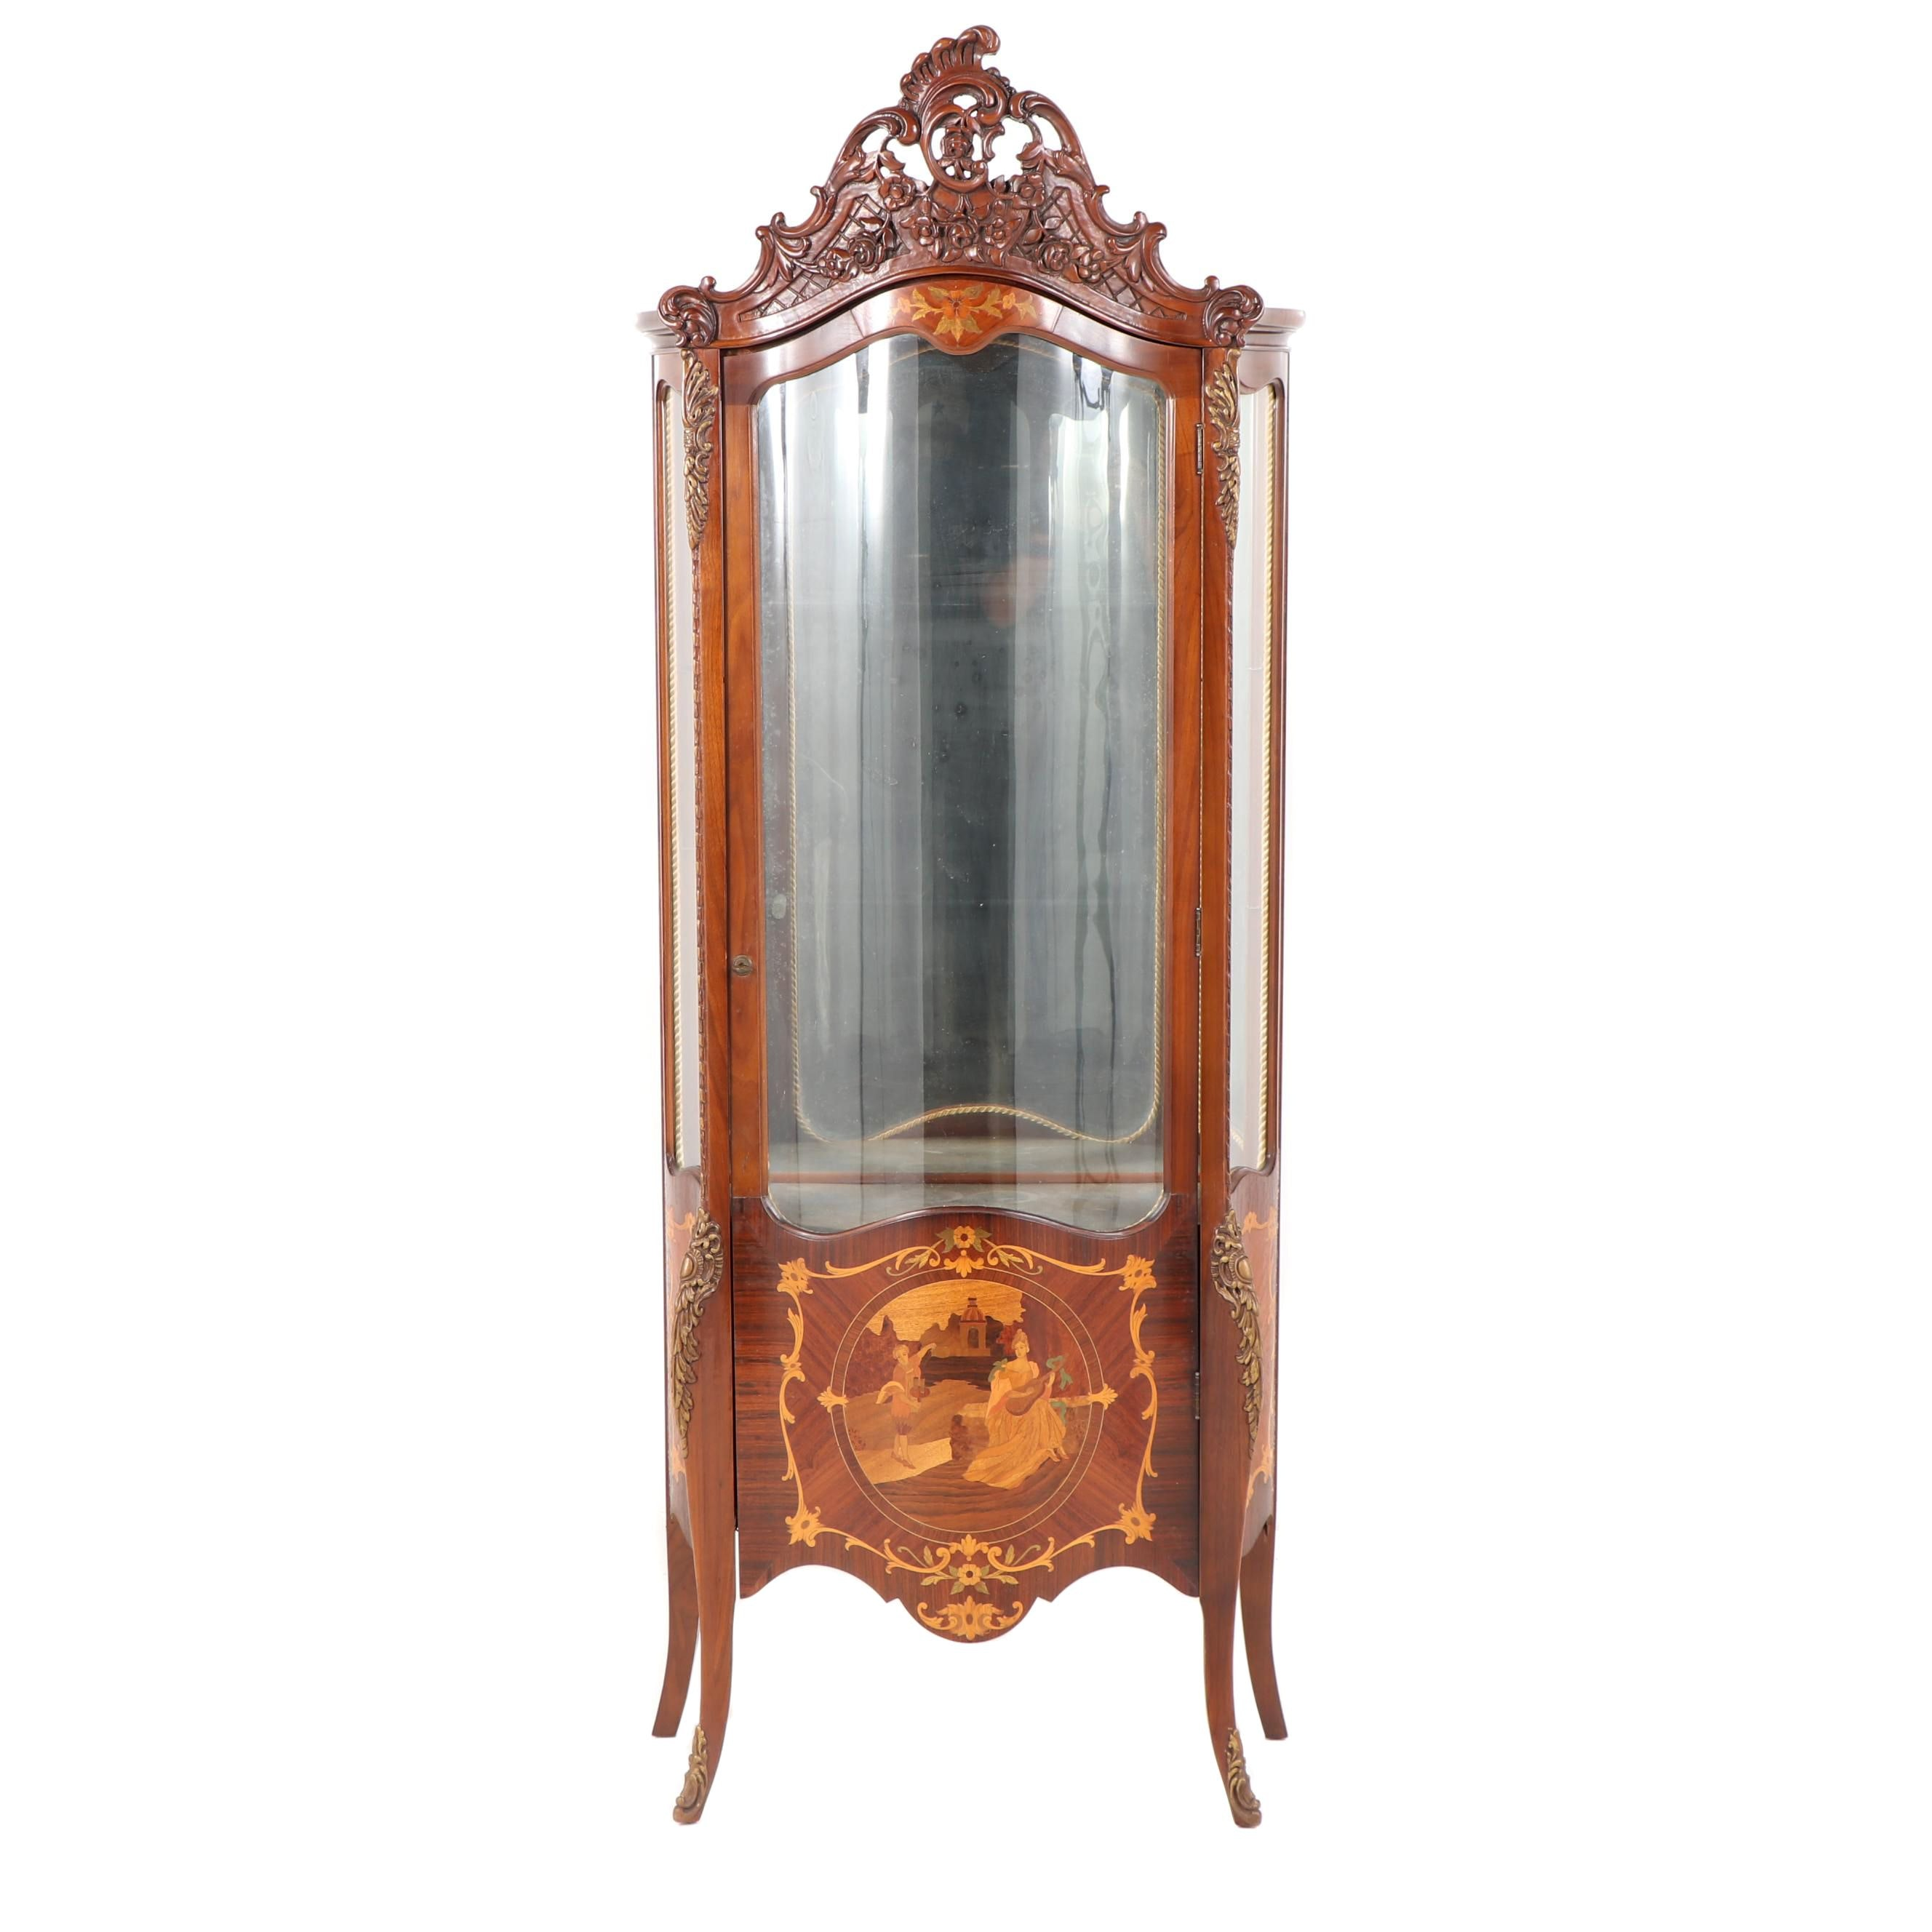 Louis XV Style Walnut Illuminated Vitrine with Marquetry Inlay, Early 20th C.